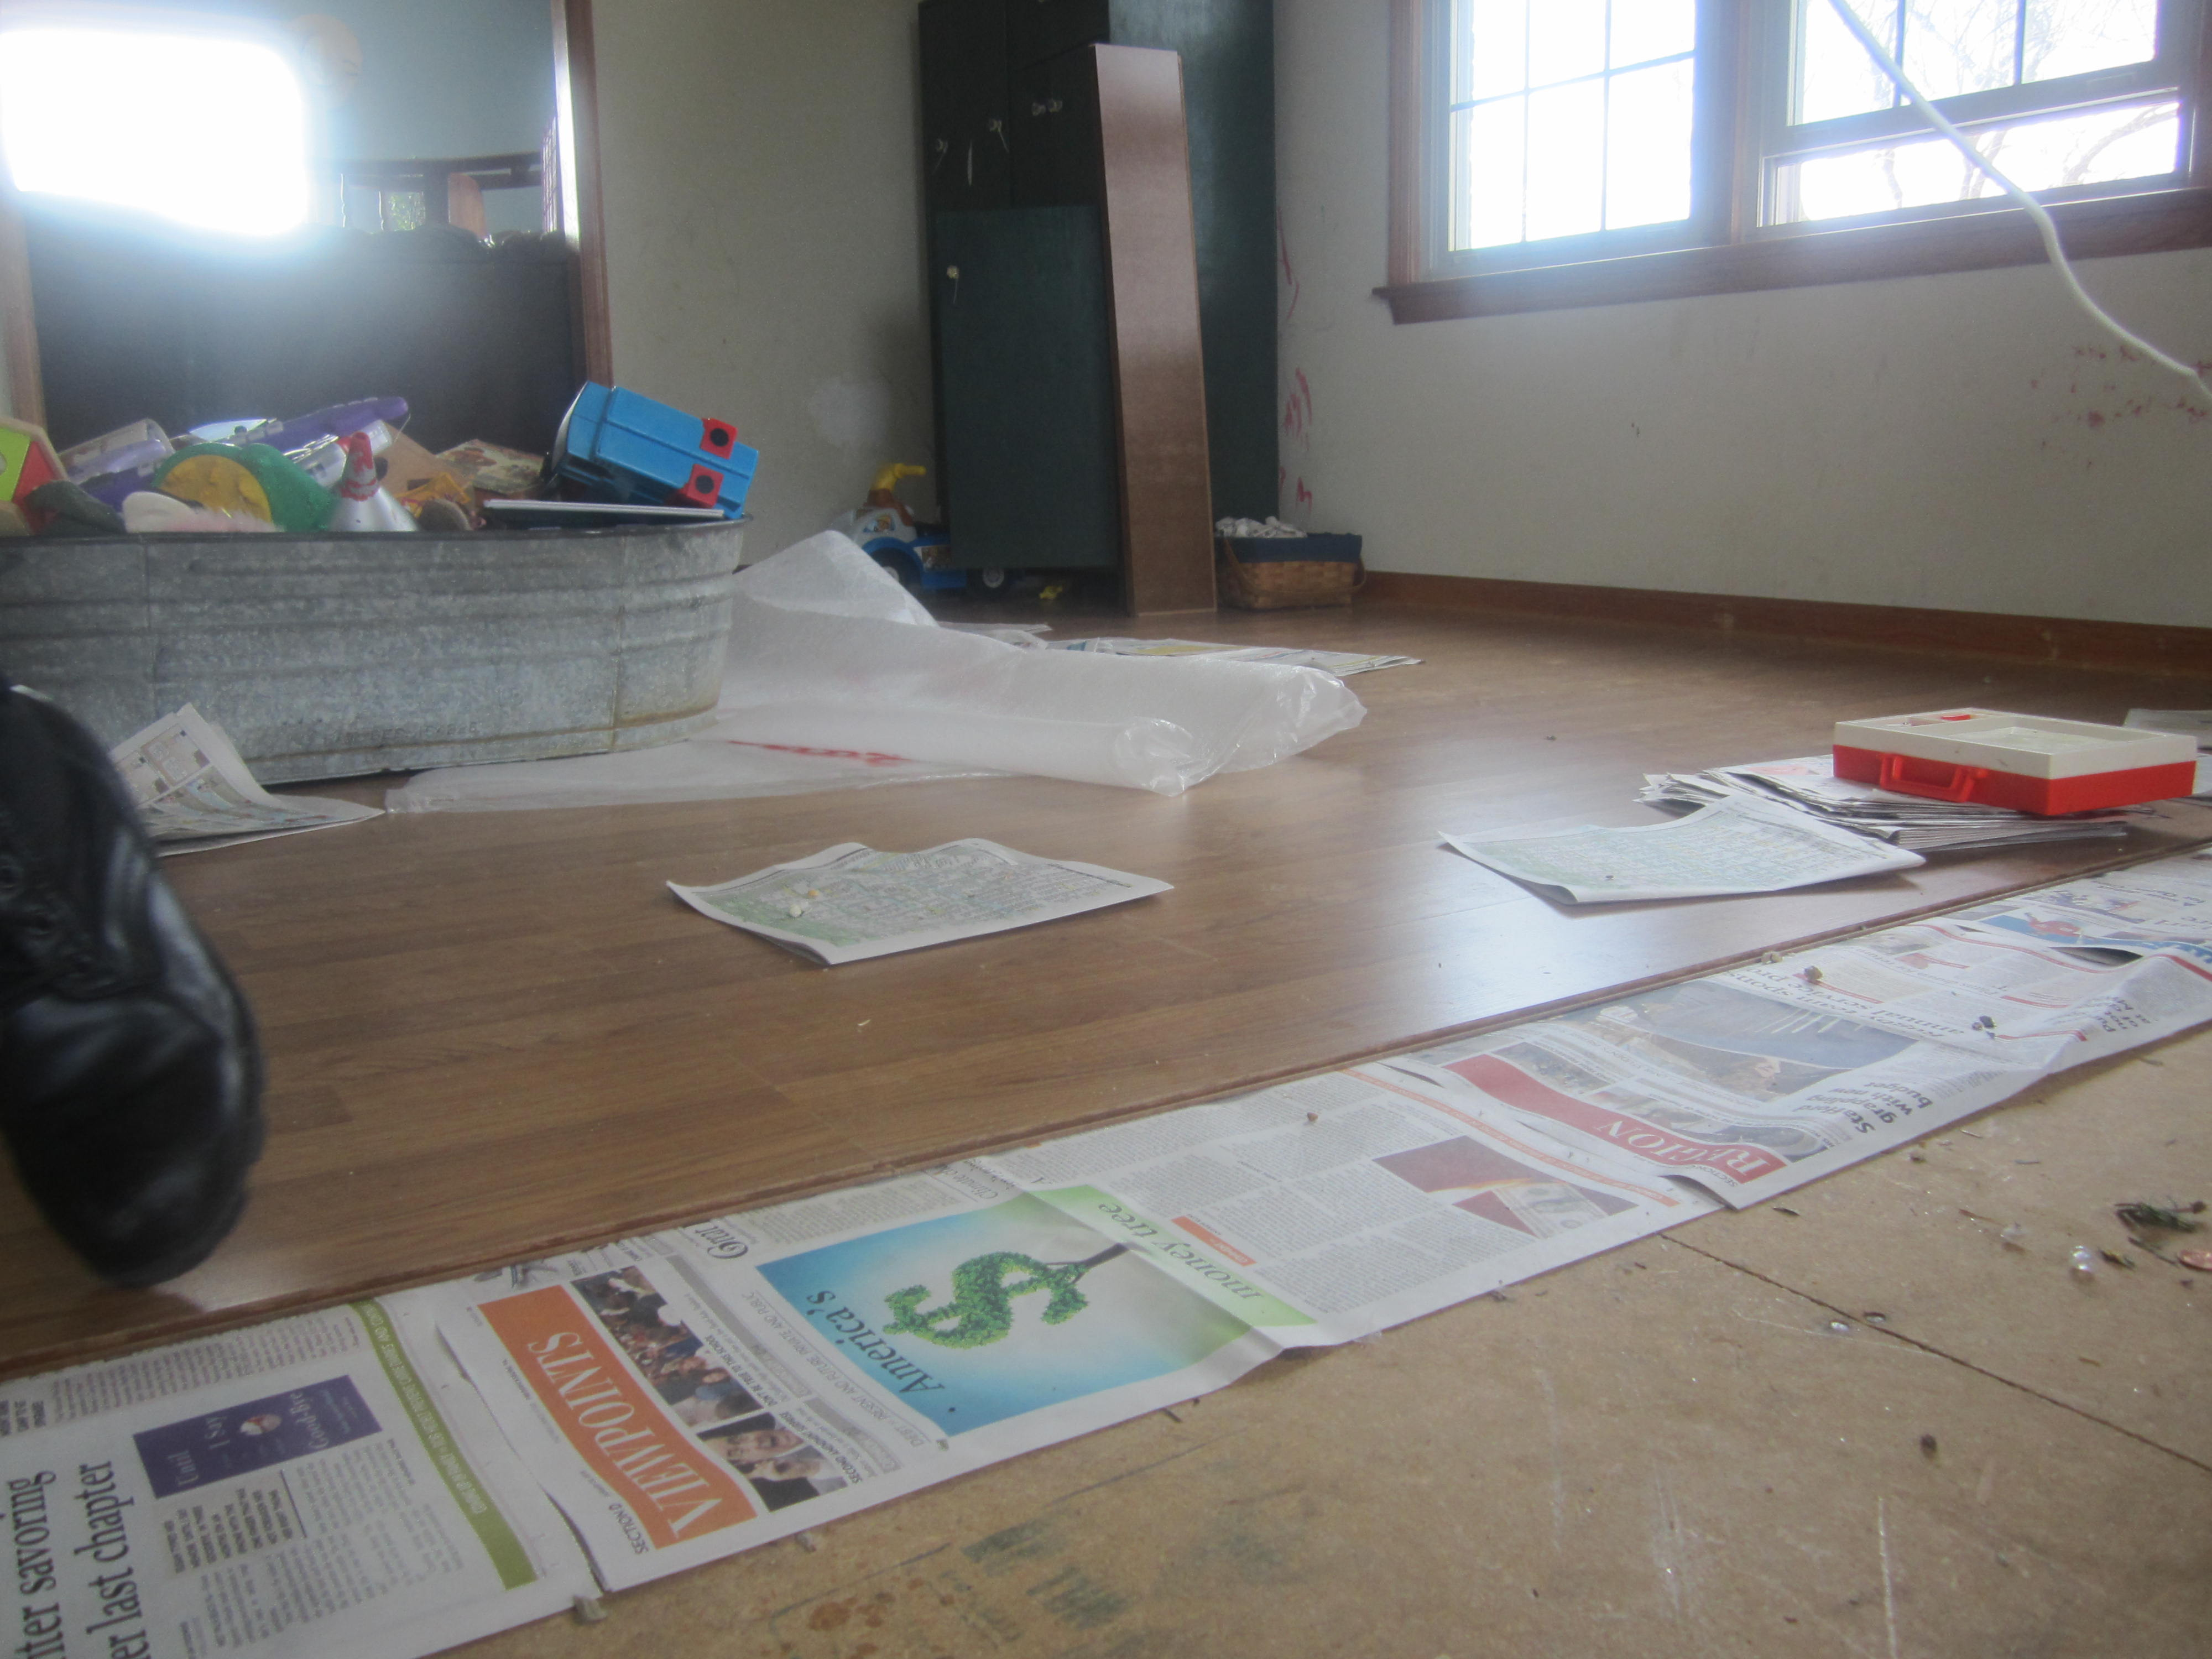 the and each flooring we hardwood it four row underlayment tag cardboard for already on under then laminate top of page laid slid with img section a this floor circus repeated raising floors